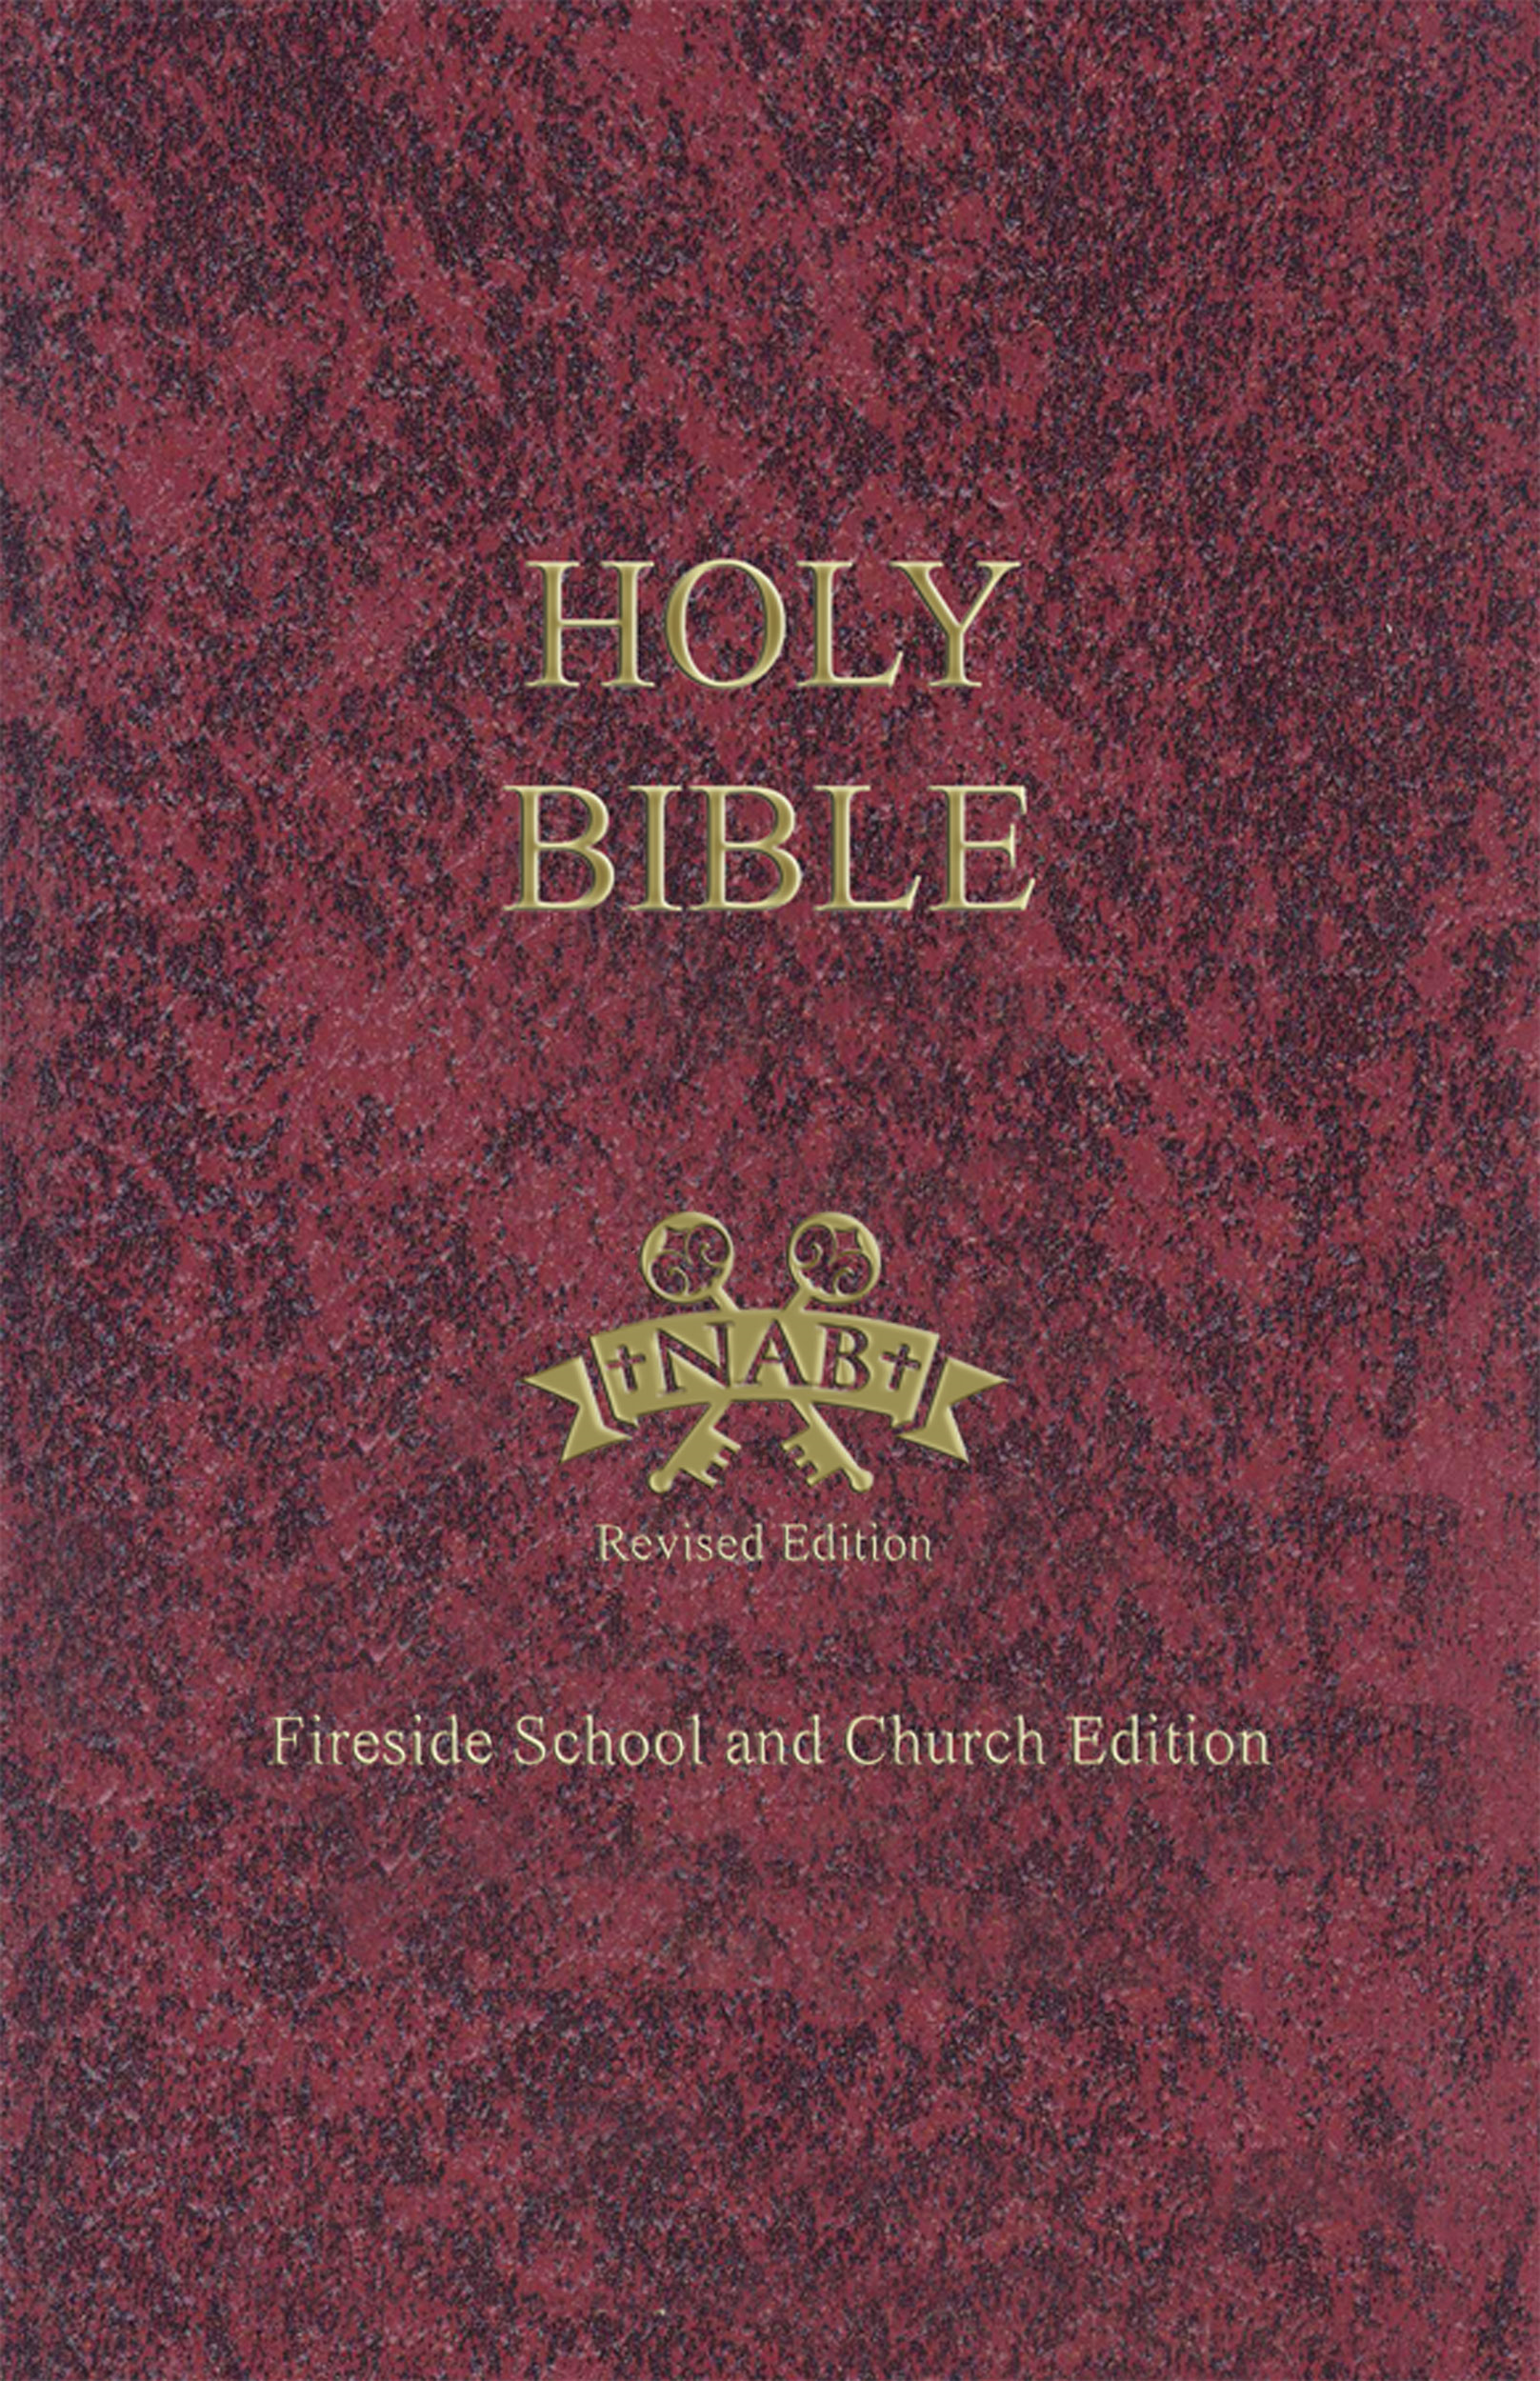 Fireside School & Church Edition - NABRE